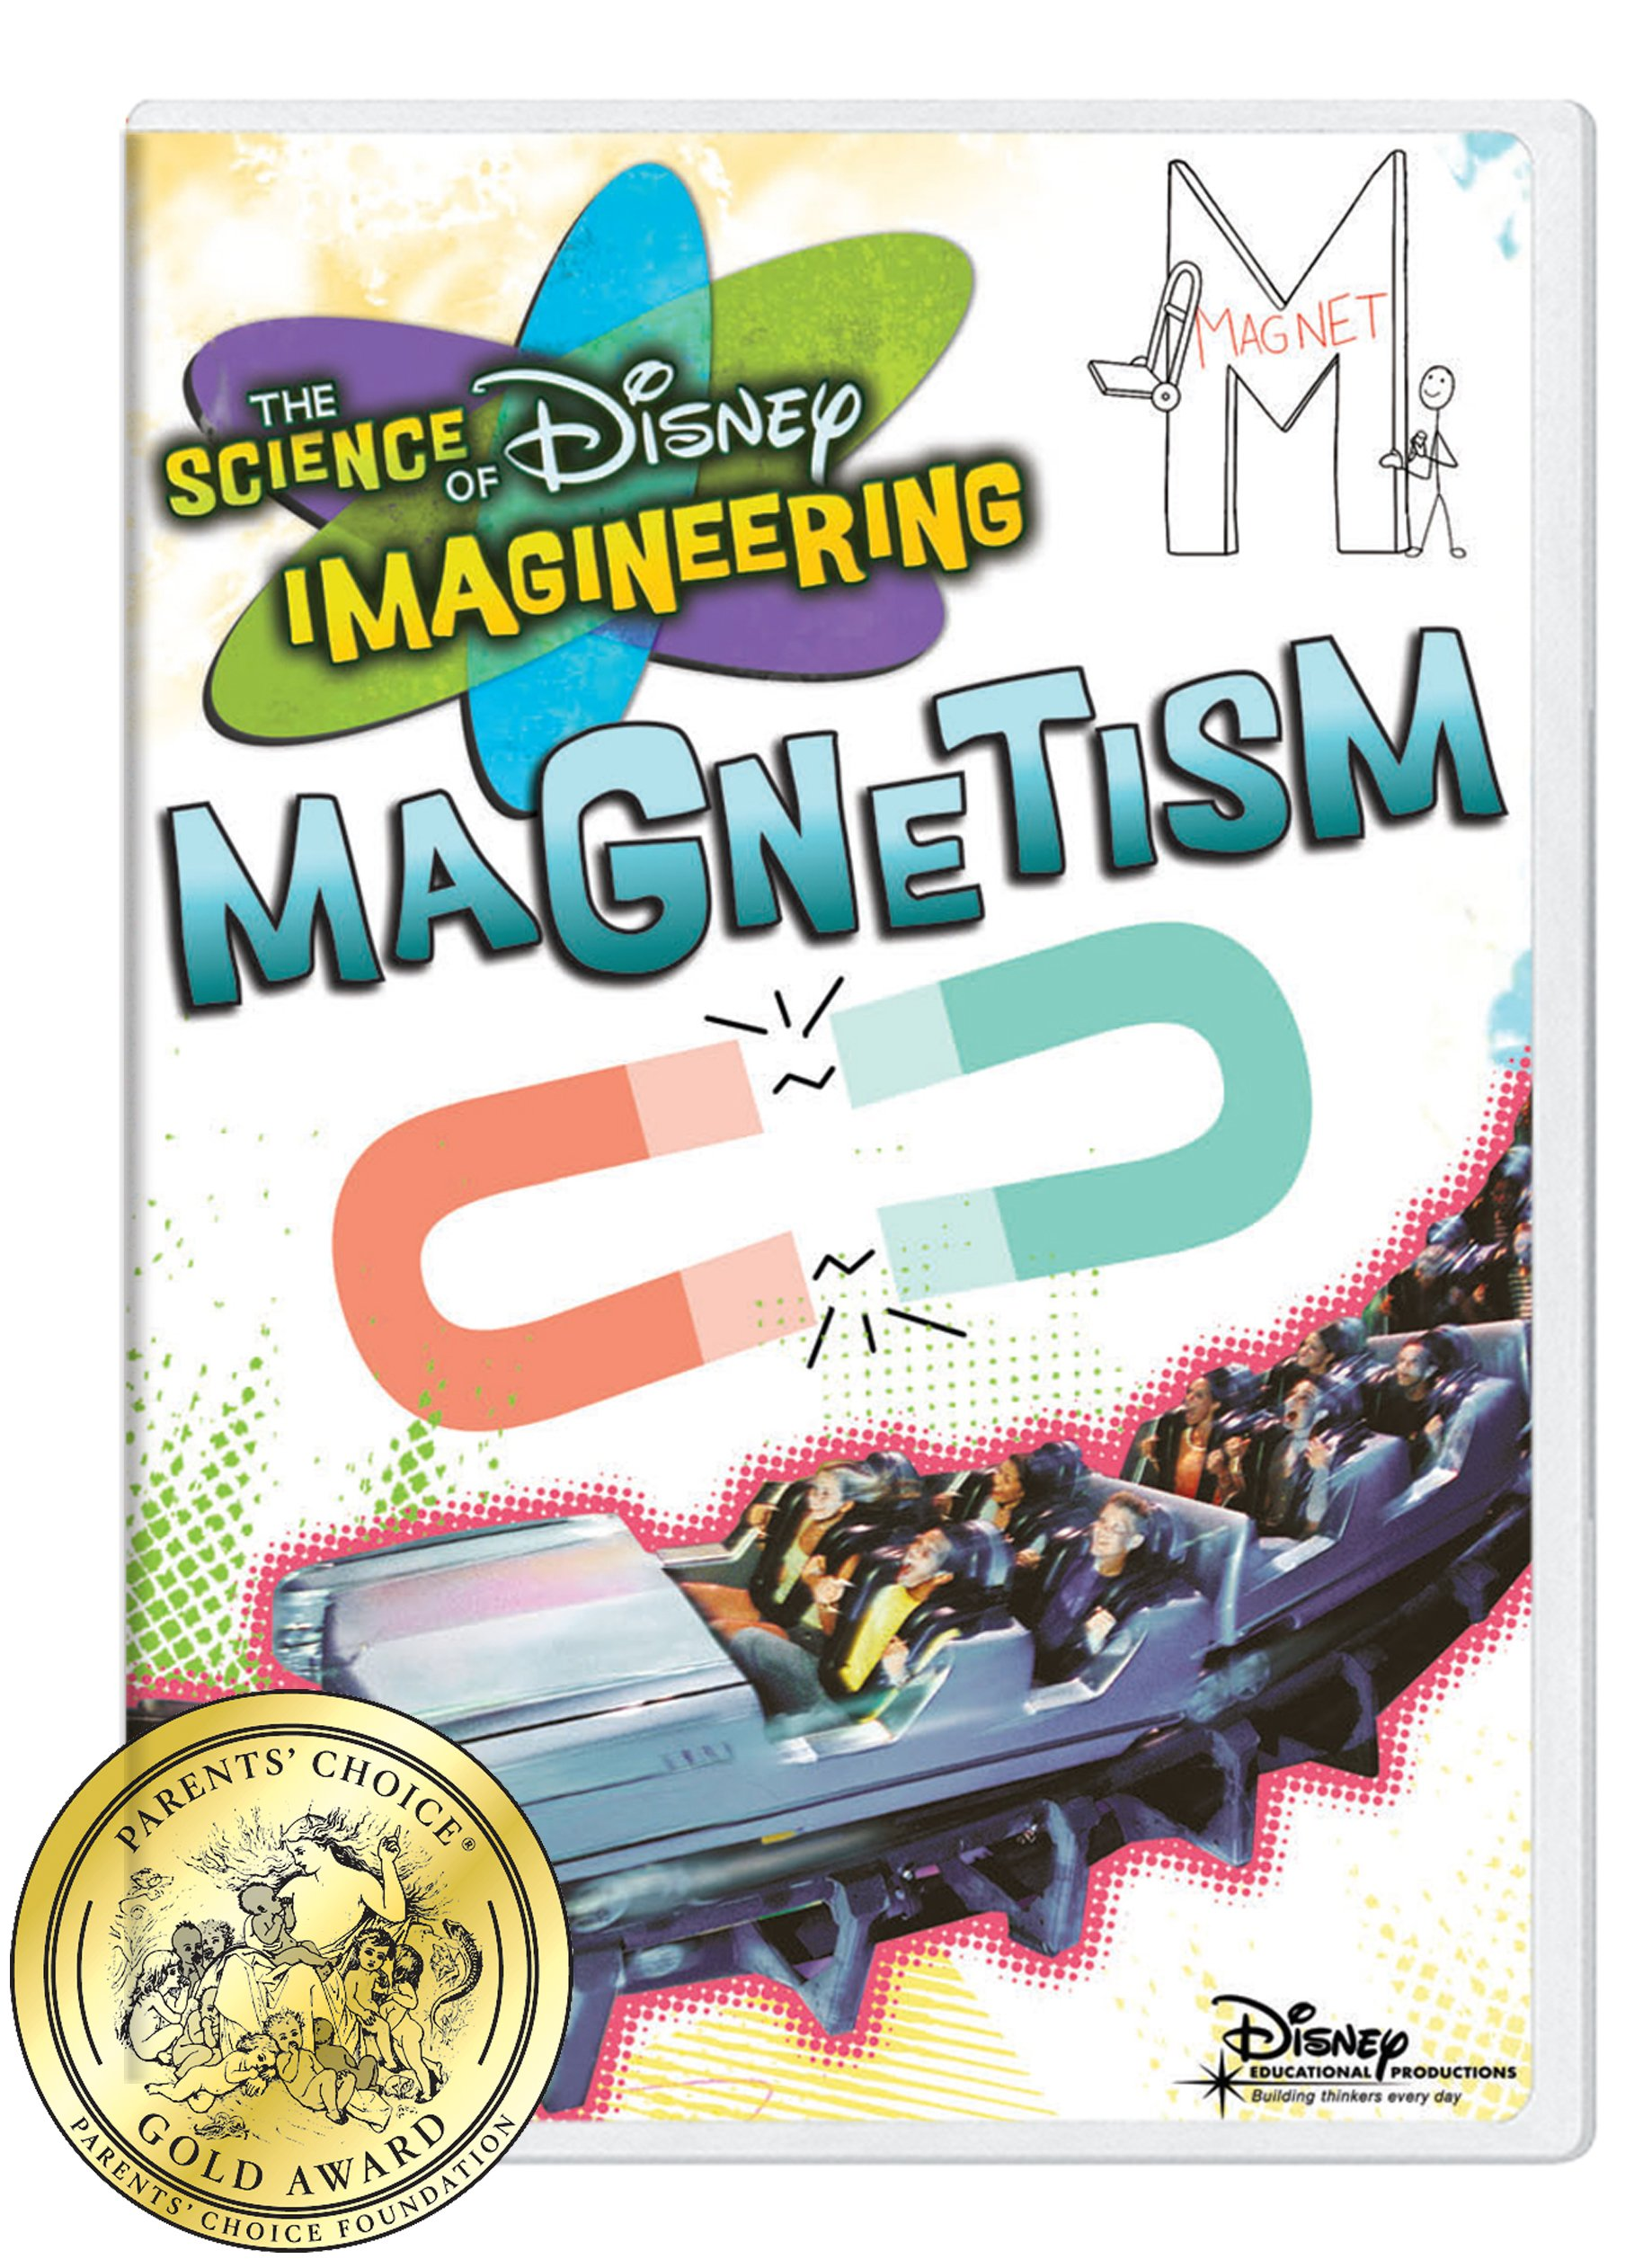 The Science of Disney Imagineering Magnetism [Interactive DVD] by Disney Educational Productions